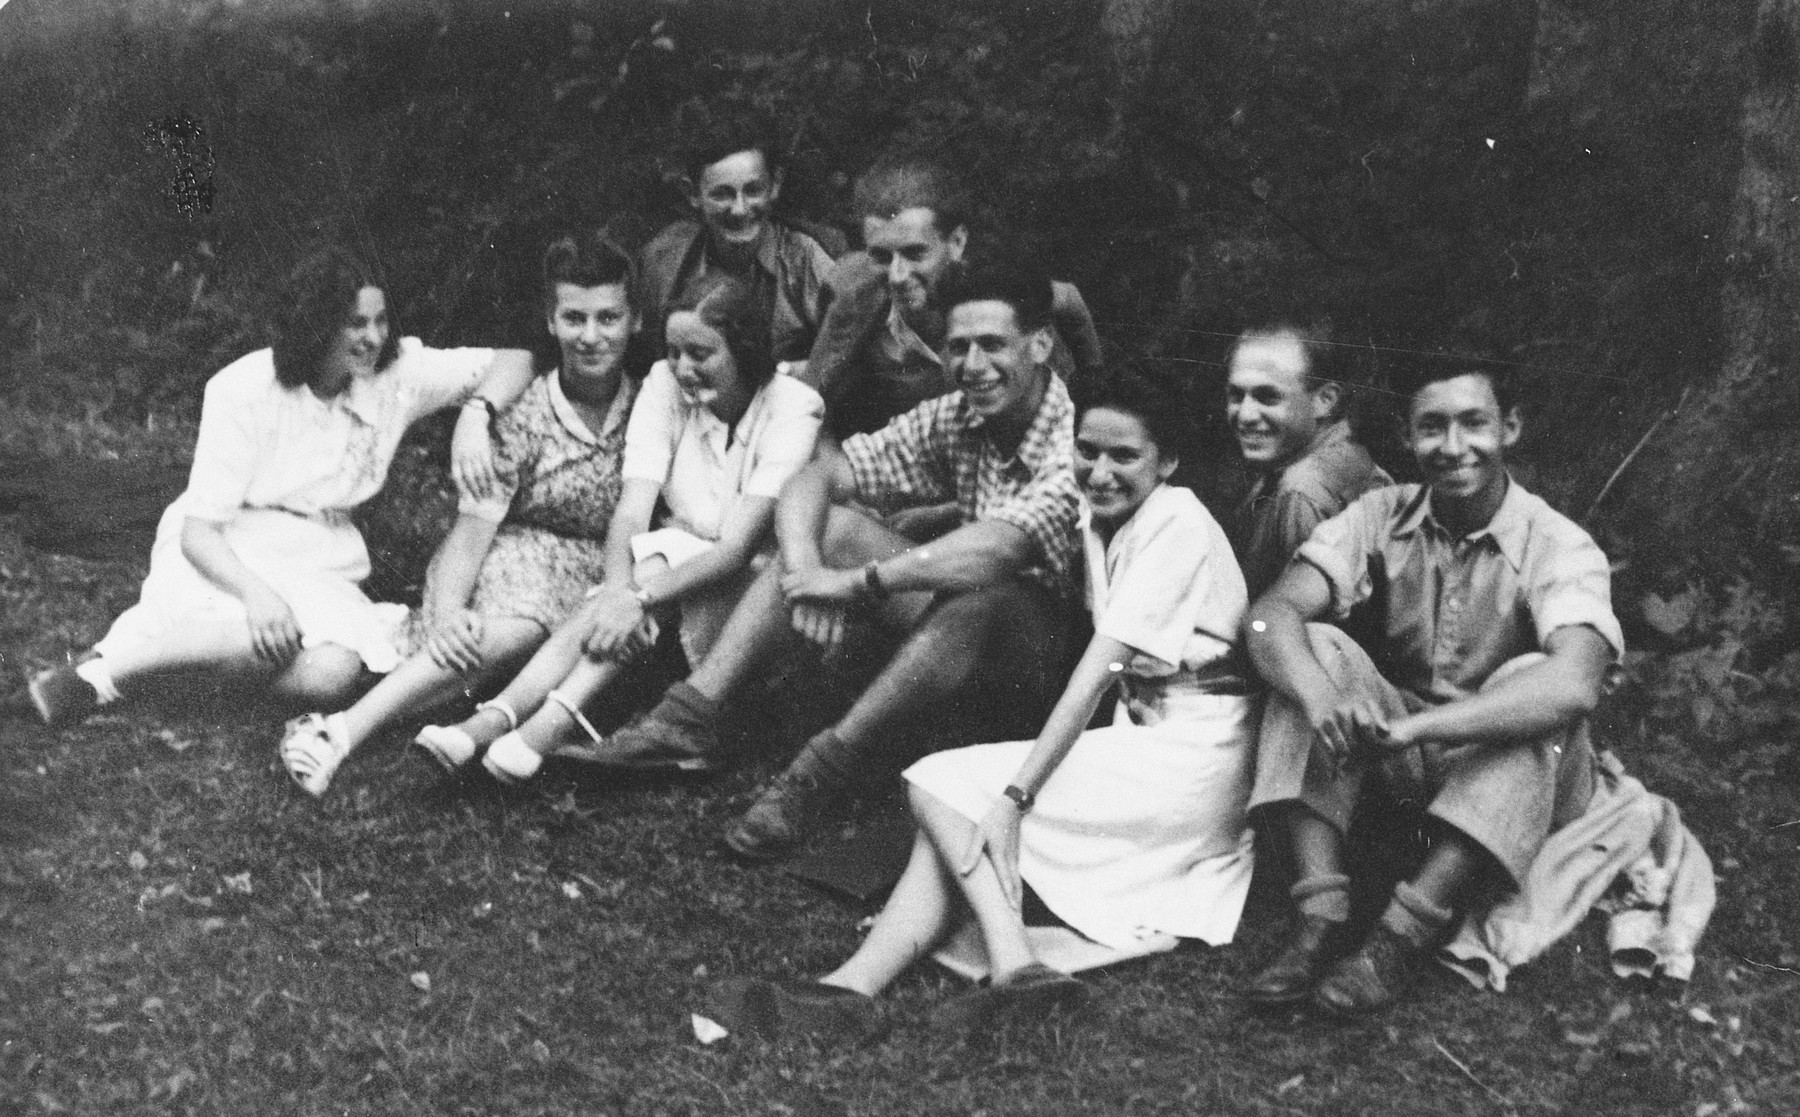 Members of the Zionist youth movement, Hashomer Hatzair, meet in the forests outside of Brezno since it was forbidden for them to meet in town.